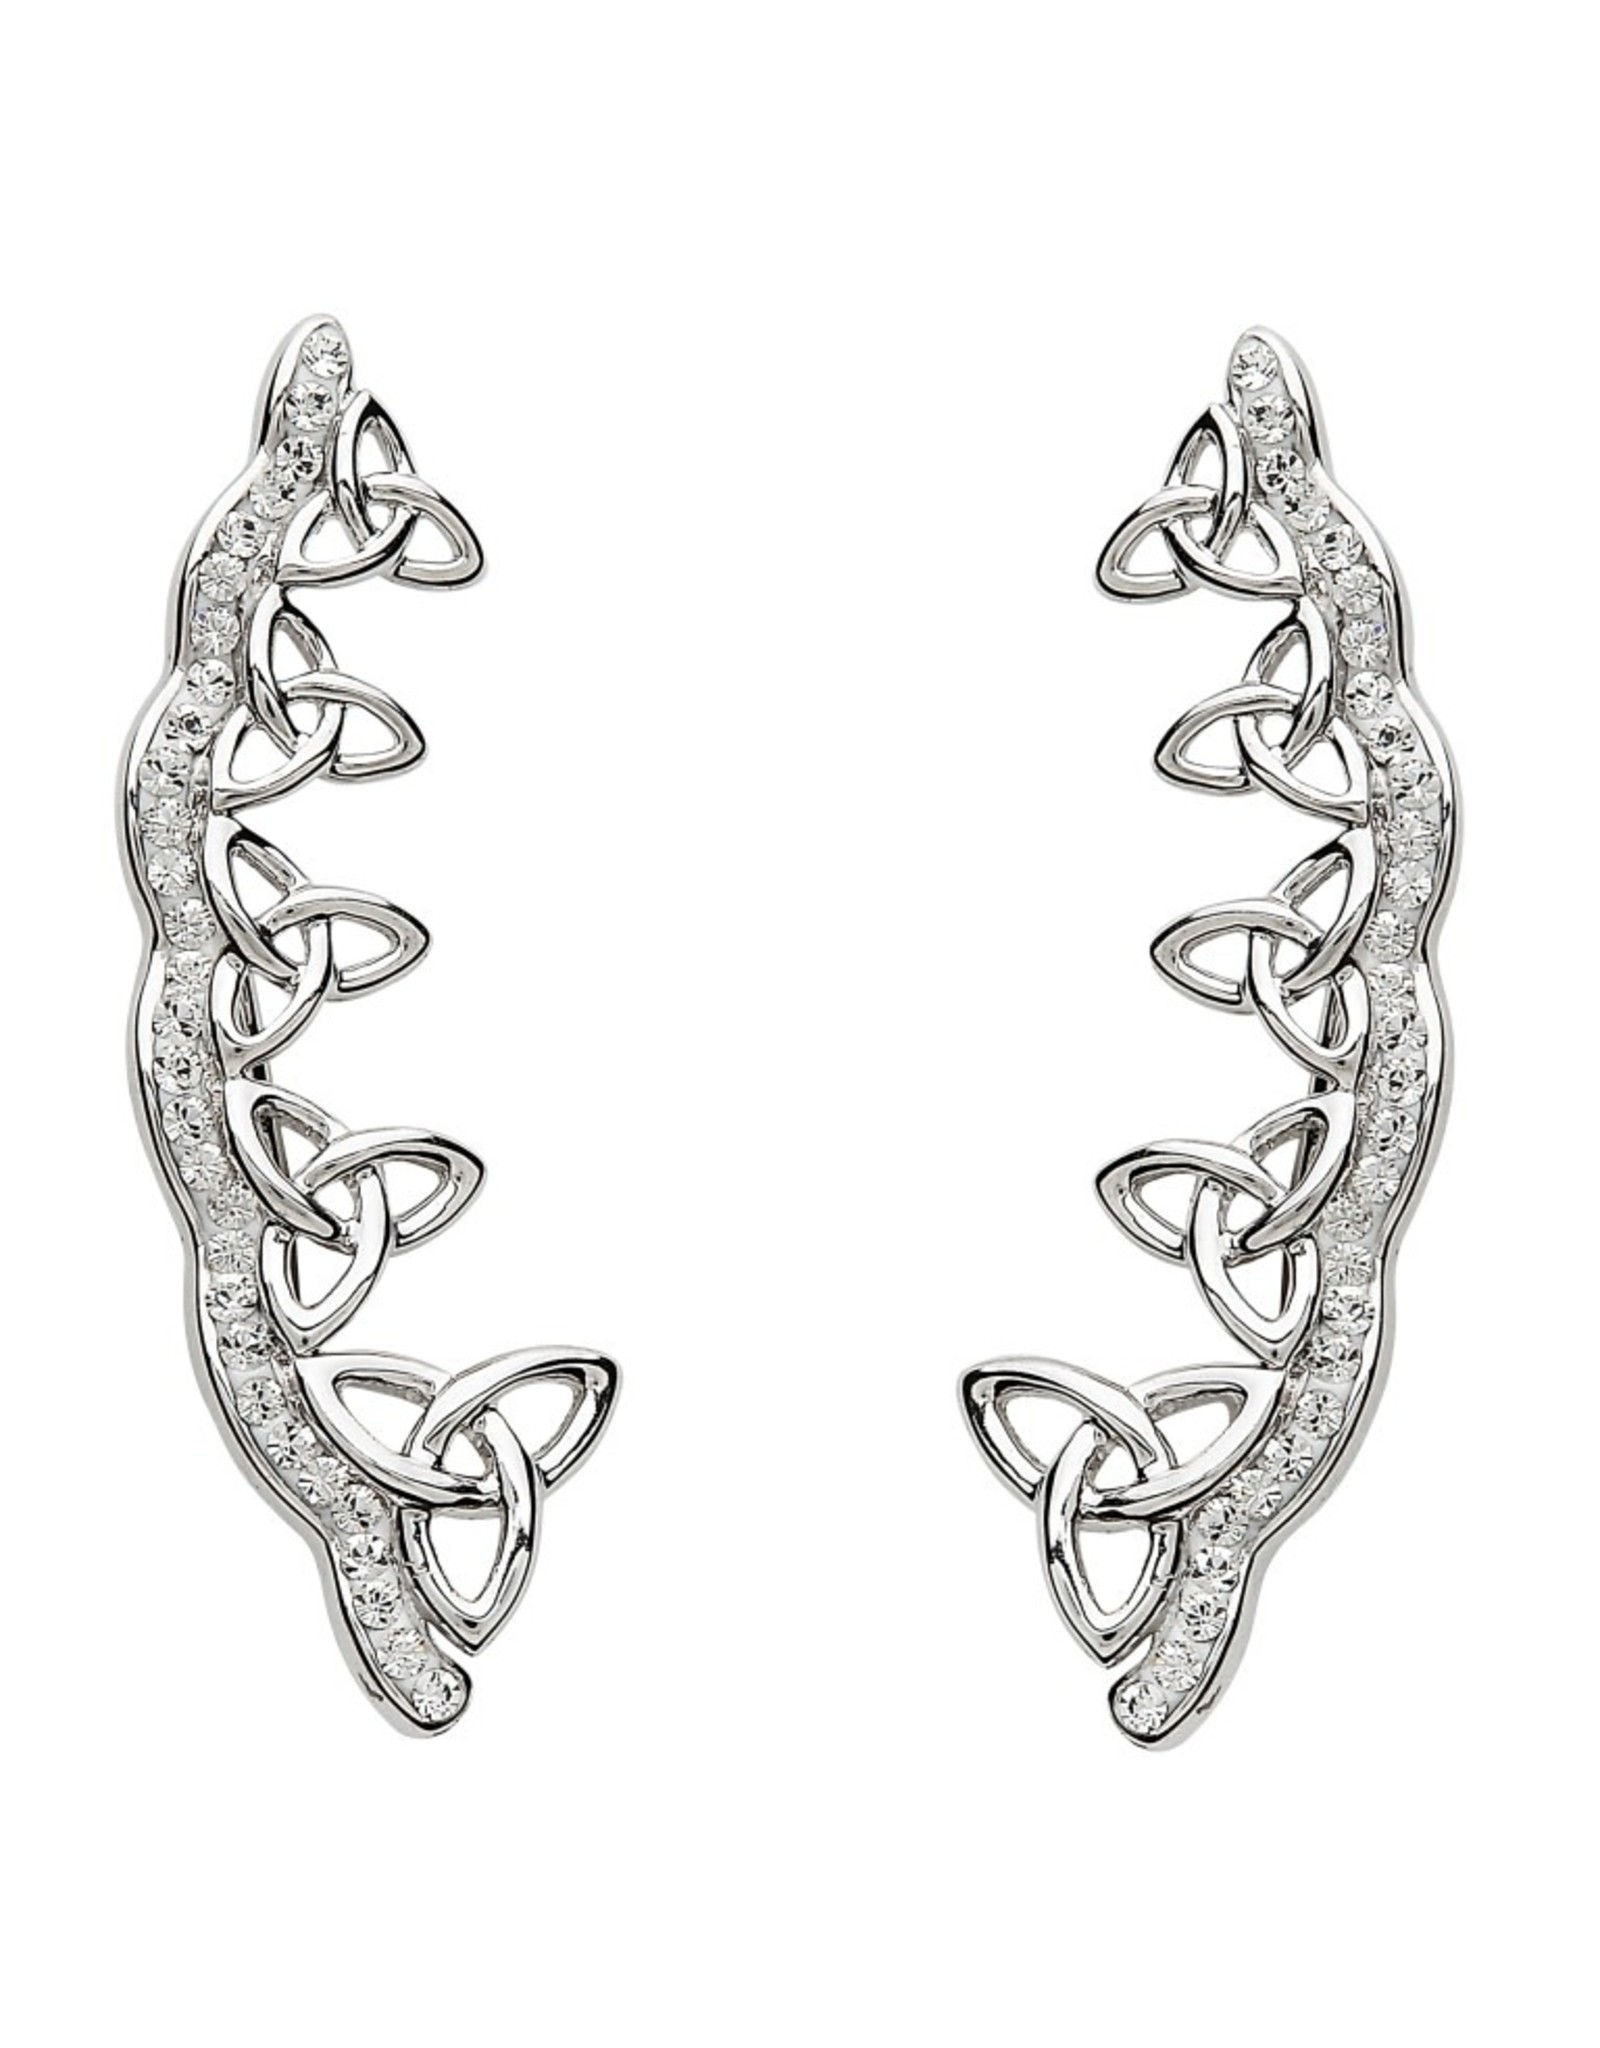 Shanore Celtic Trinity Knot Earrings Encrusted With White Swarovski Crystals